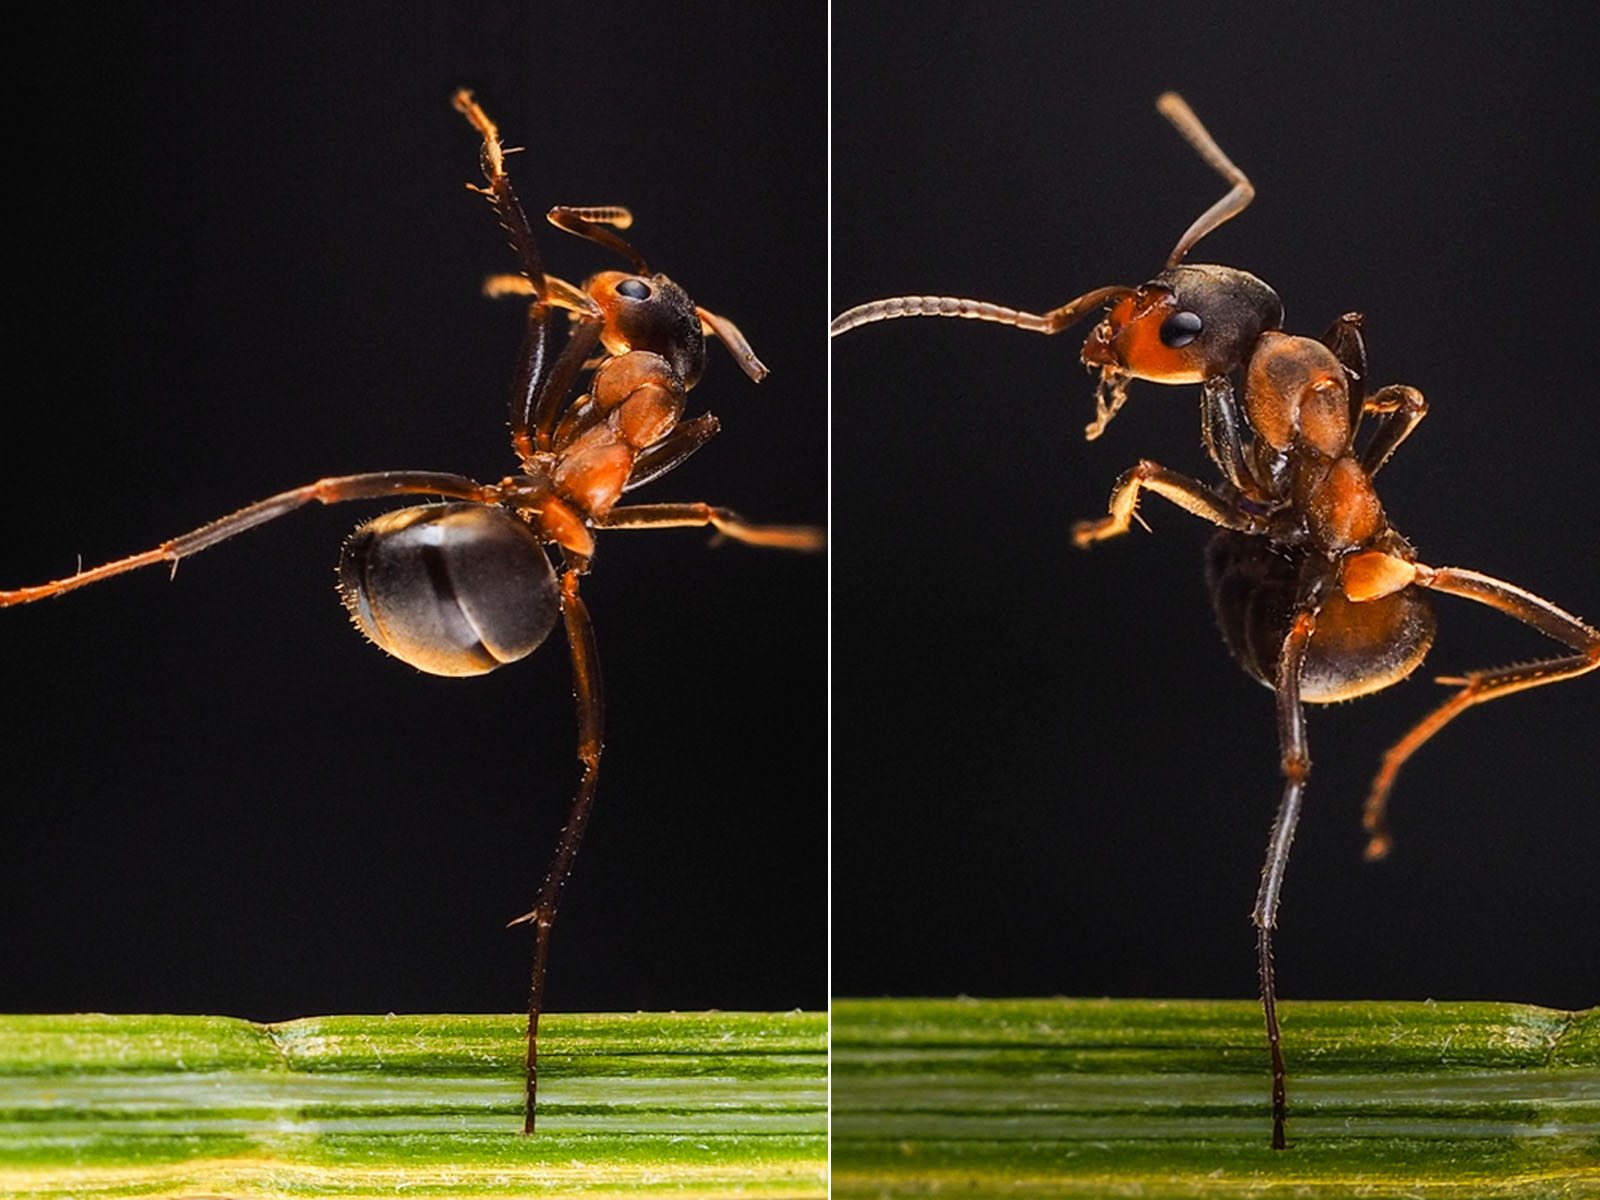 Are these ants dancing?